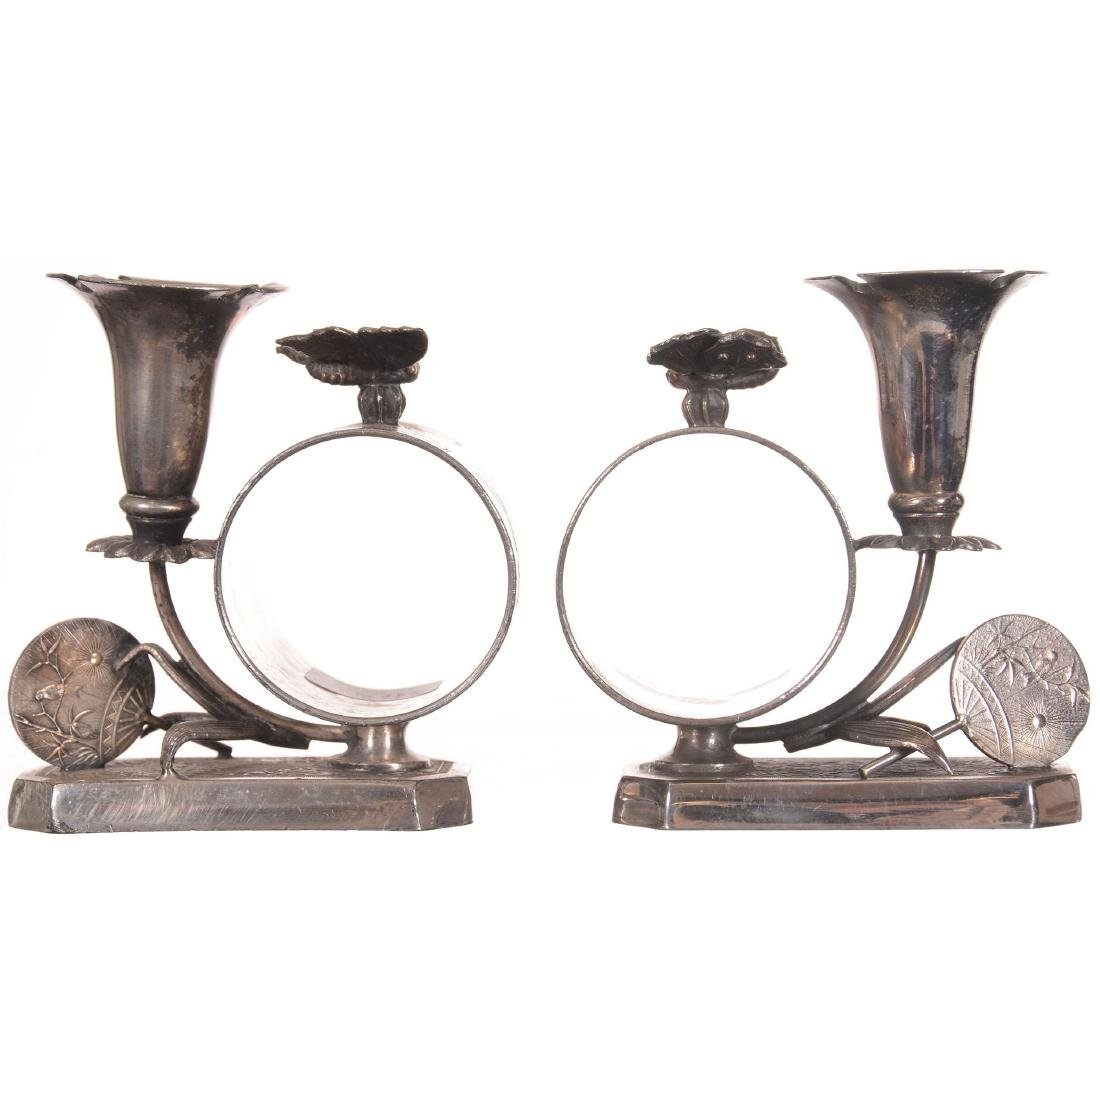 Pair Figural Silver-plate Napkin Rings with Bud Vases